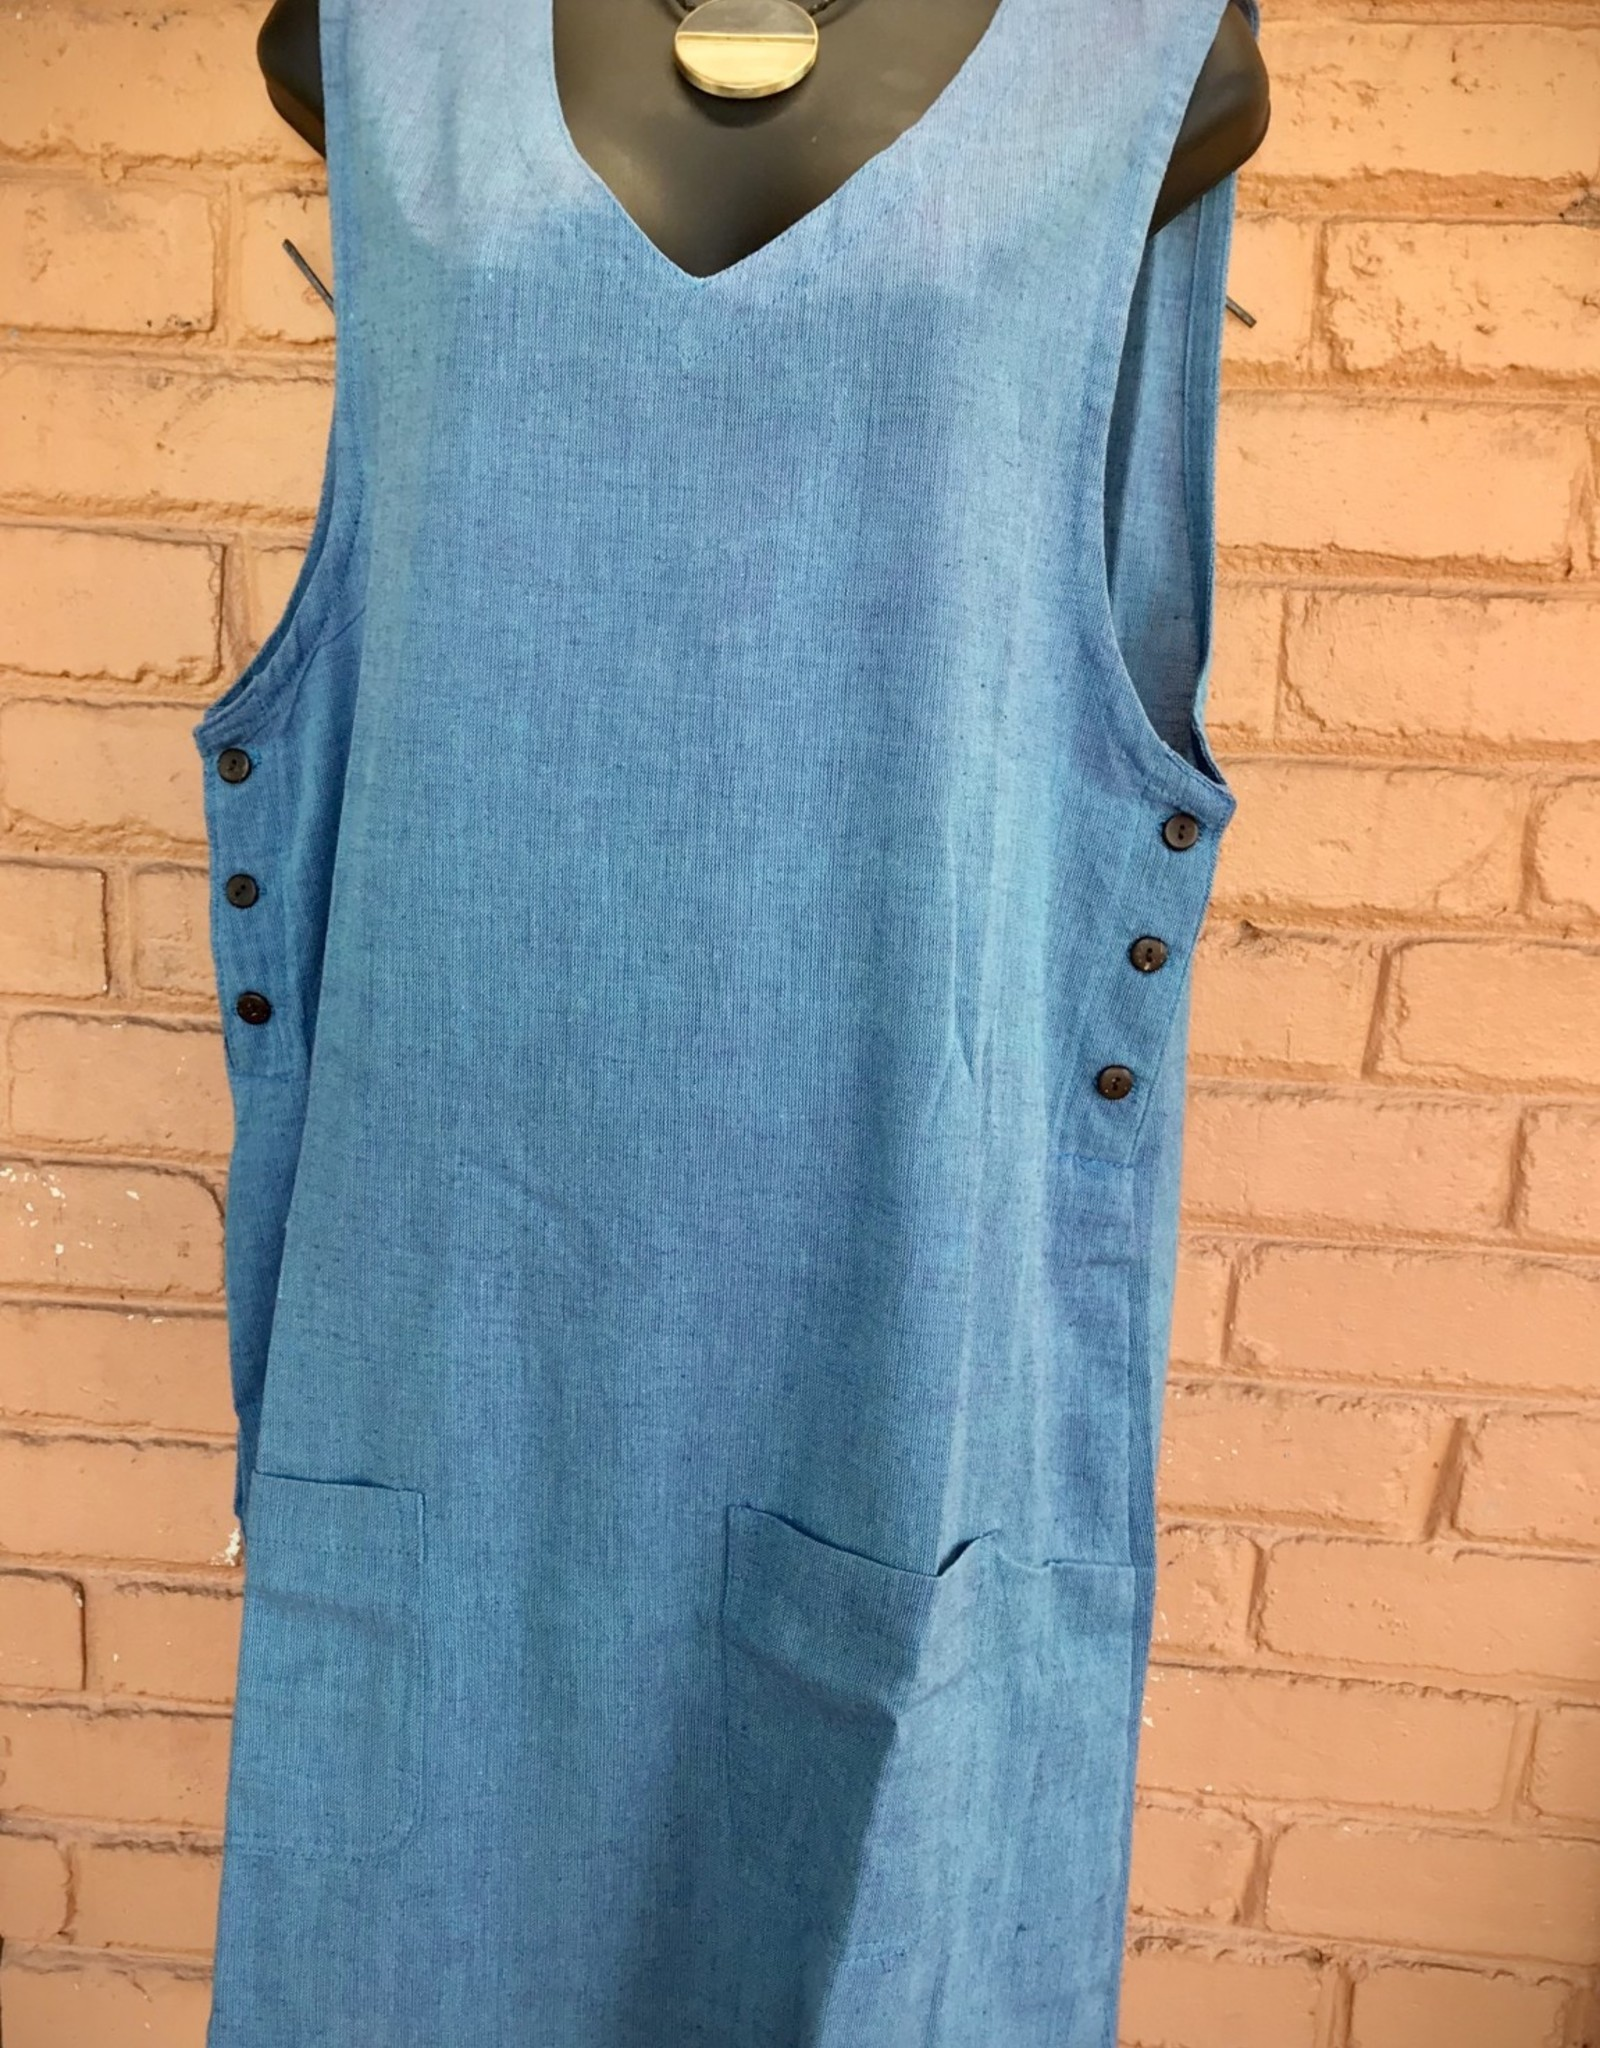 V Neck Cotton Jumper, Blue or Black, Nepal